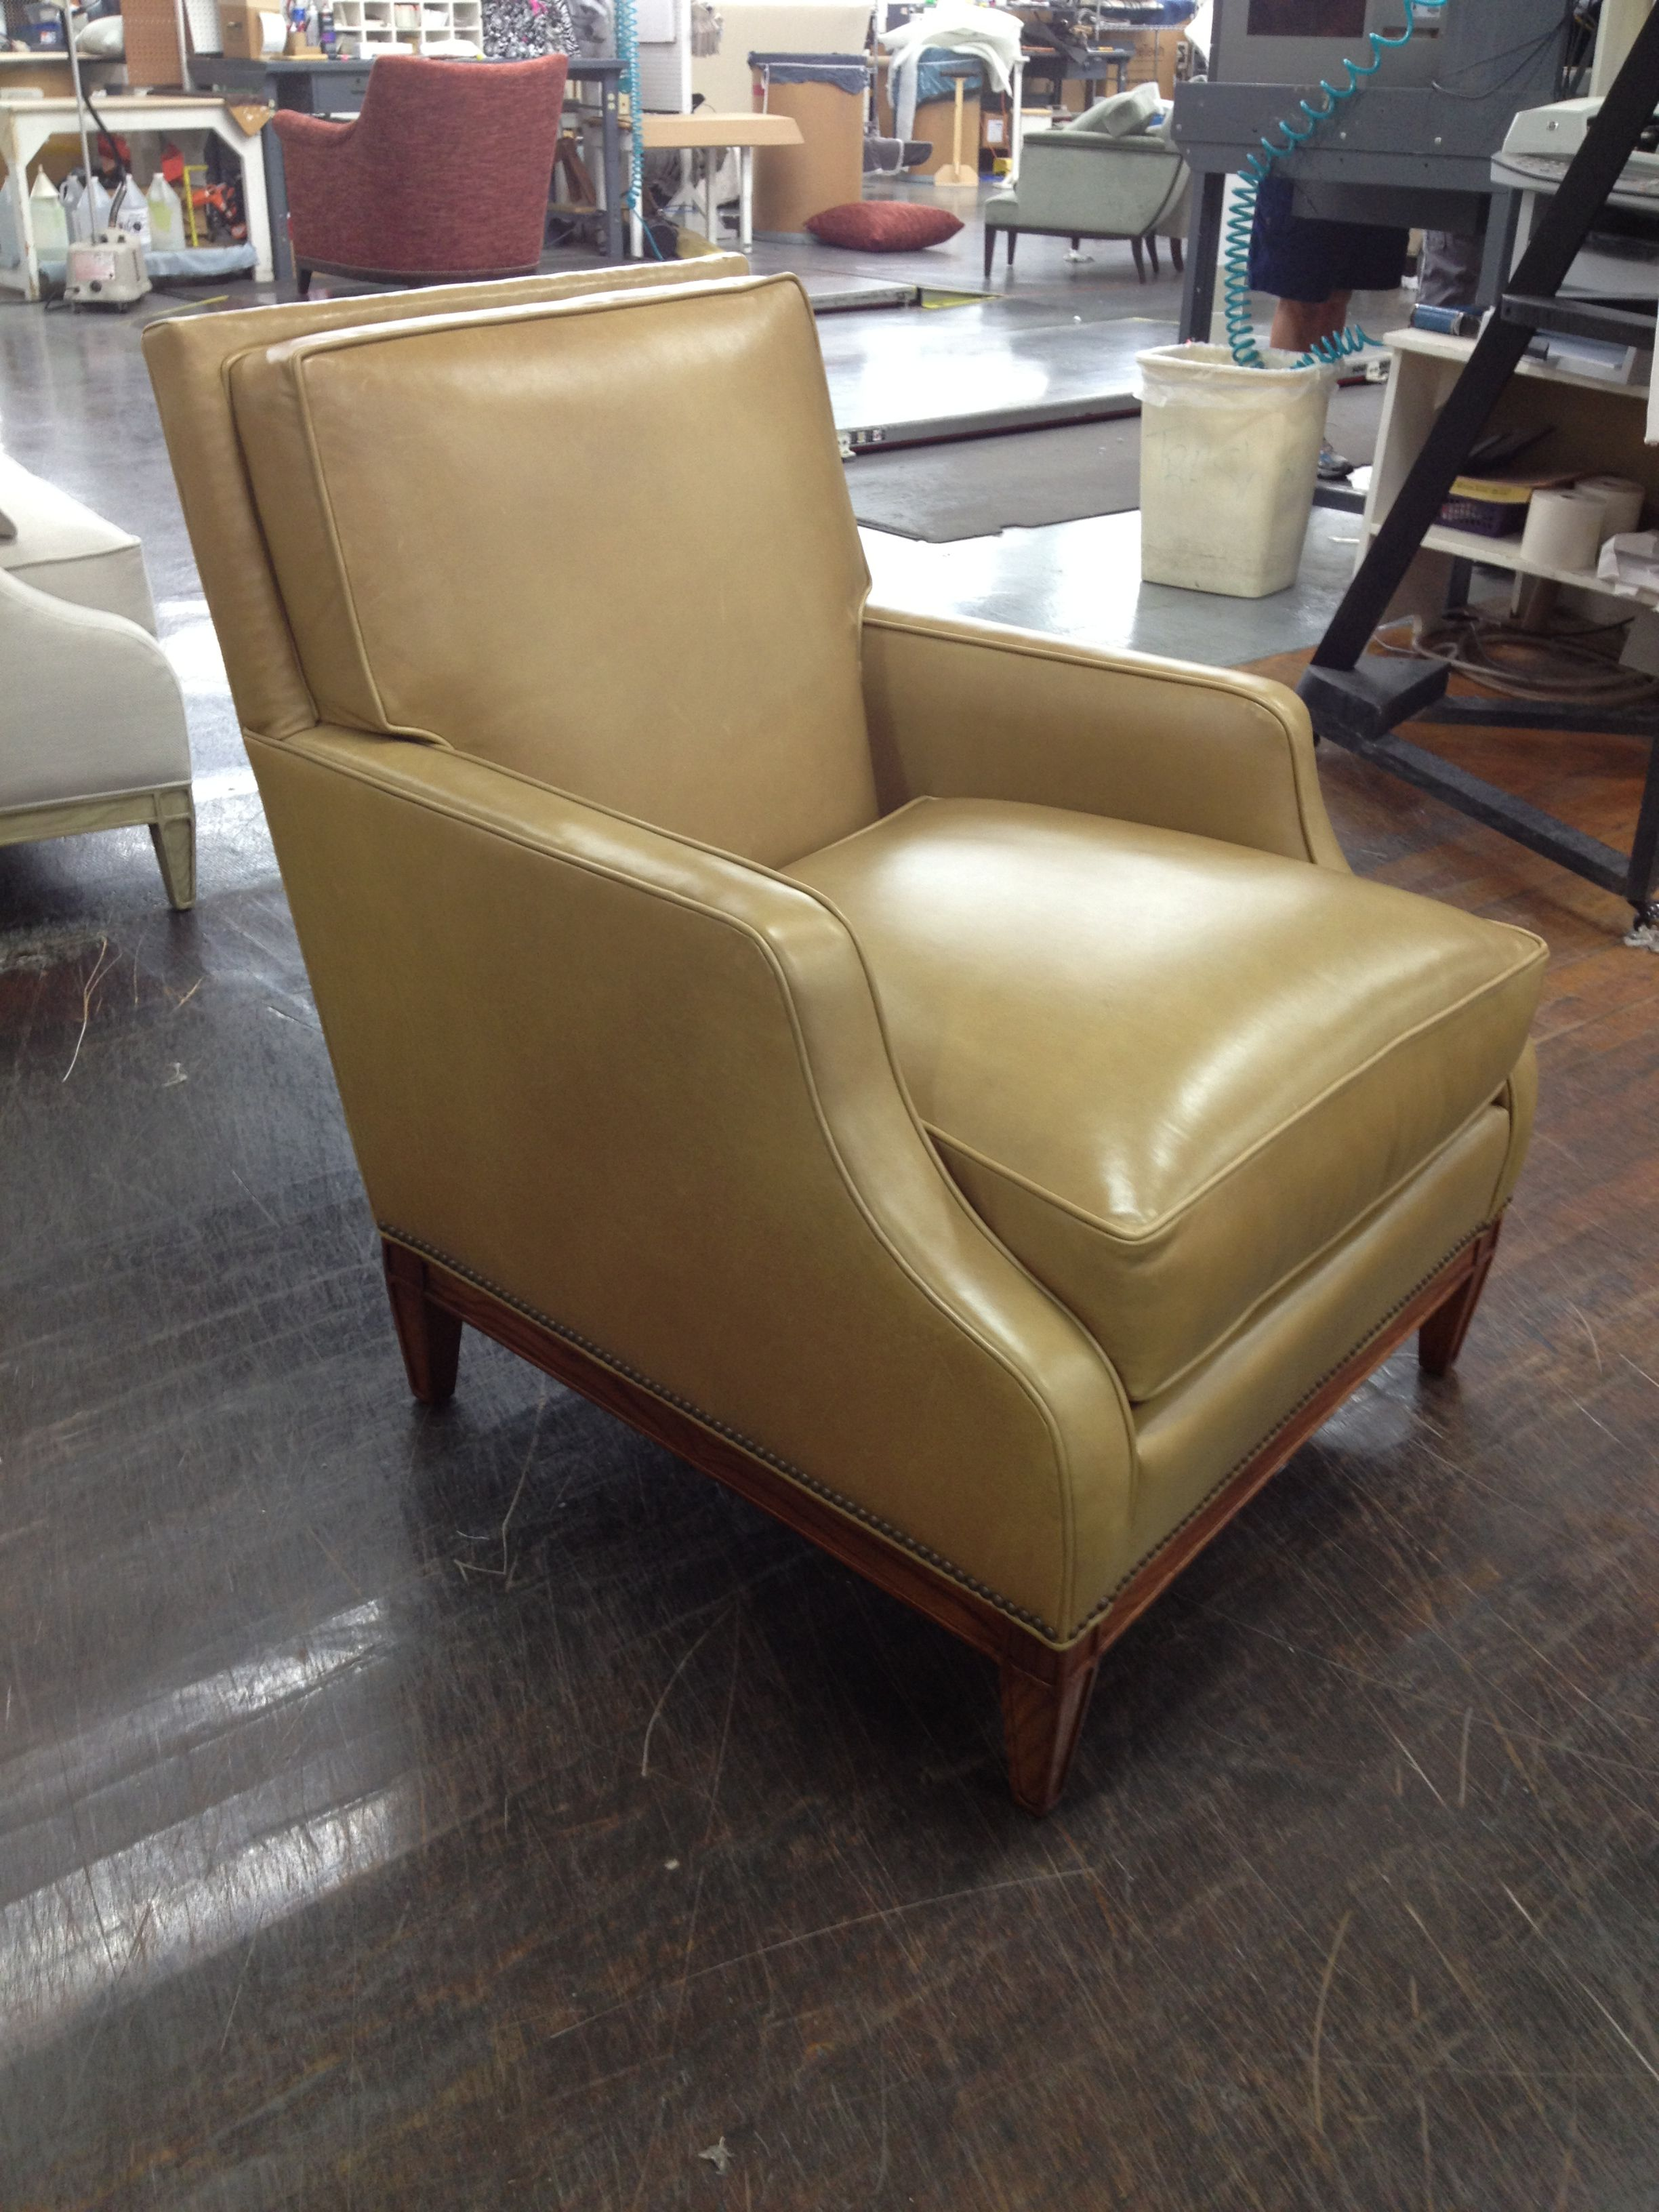 Beau The Monroe Chair From Suzanne Kasler Collection In 942 Provost Taupe  Leather And Light Walnut Finish. Http://www.hickorychair.com /Search/SearchResults.aspx?